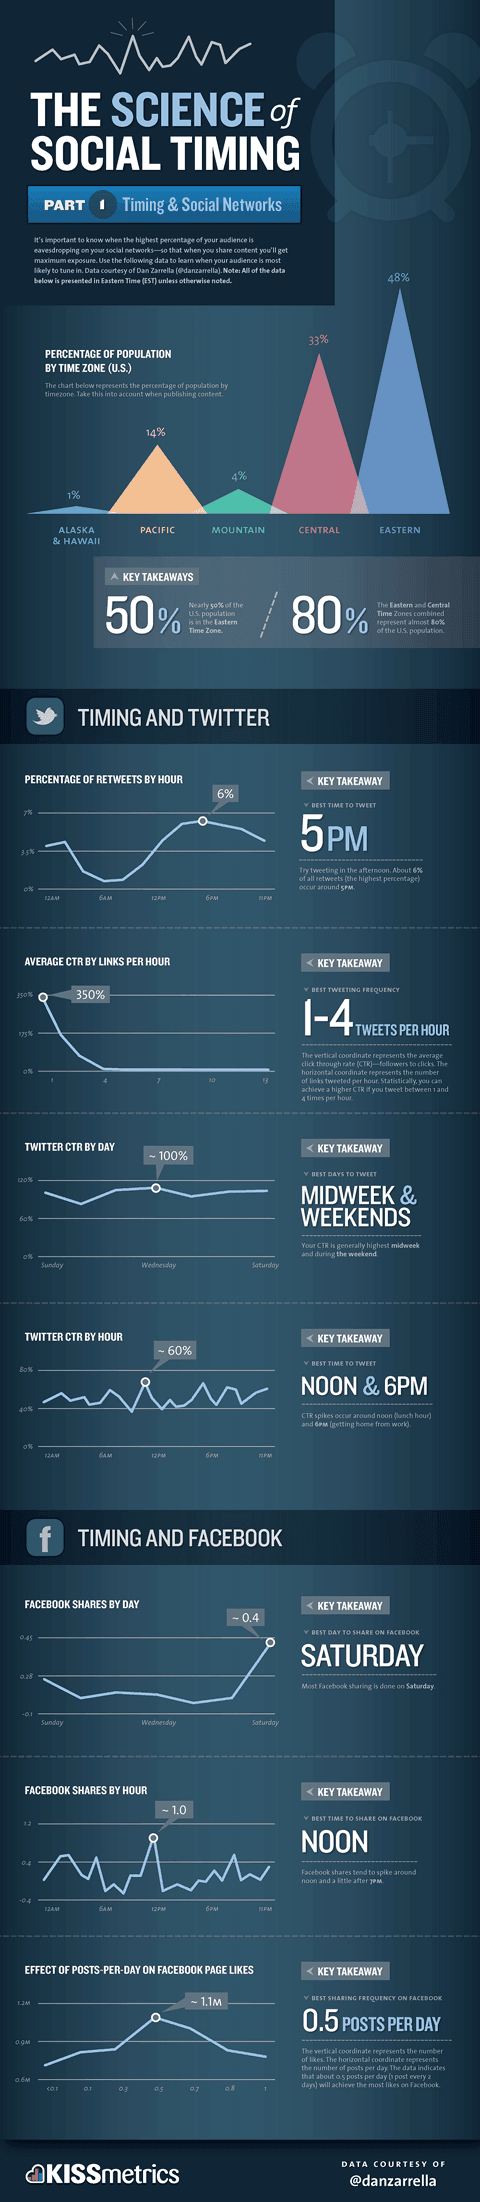 Best time to post on twitter and facebook infographic